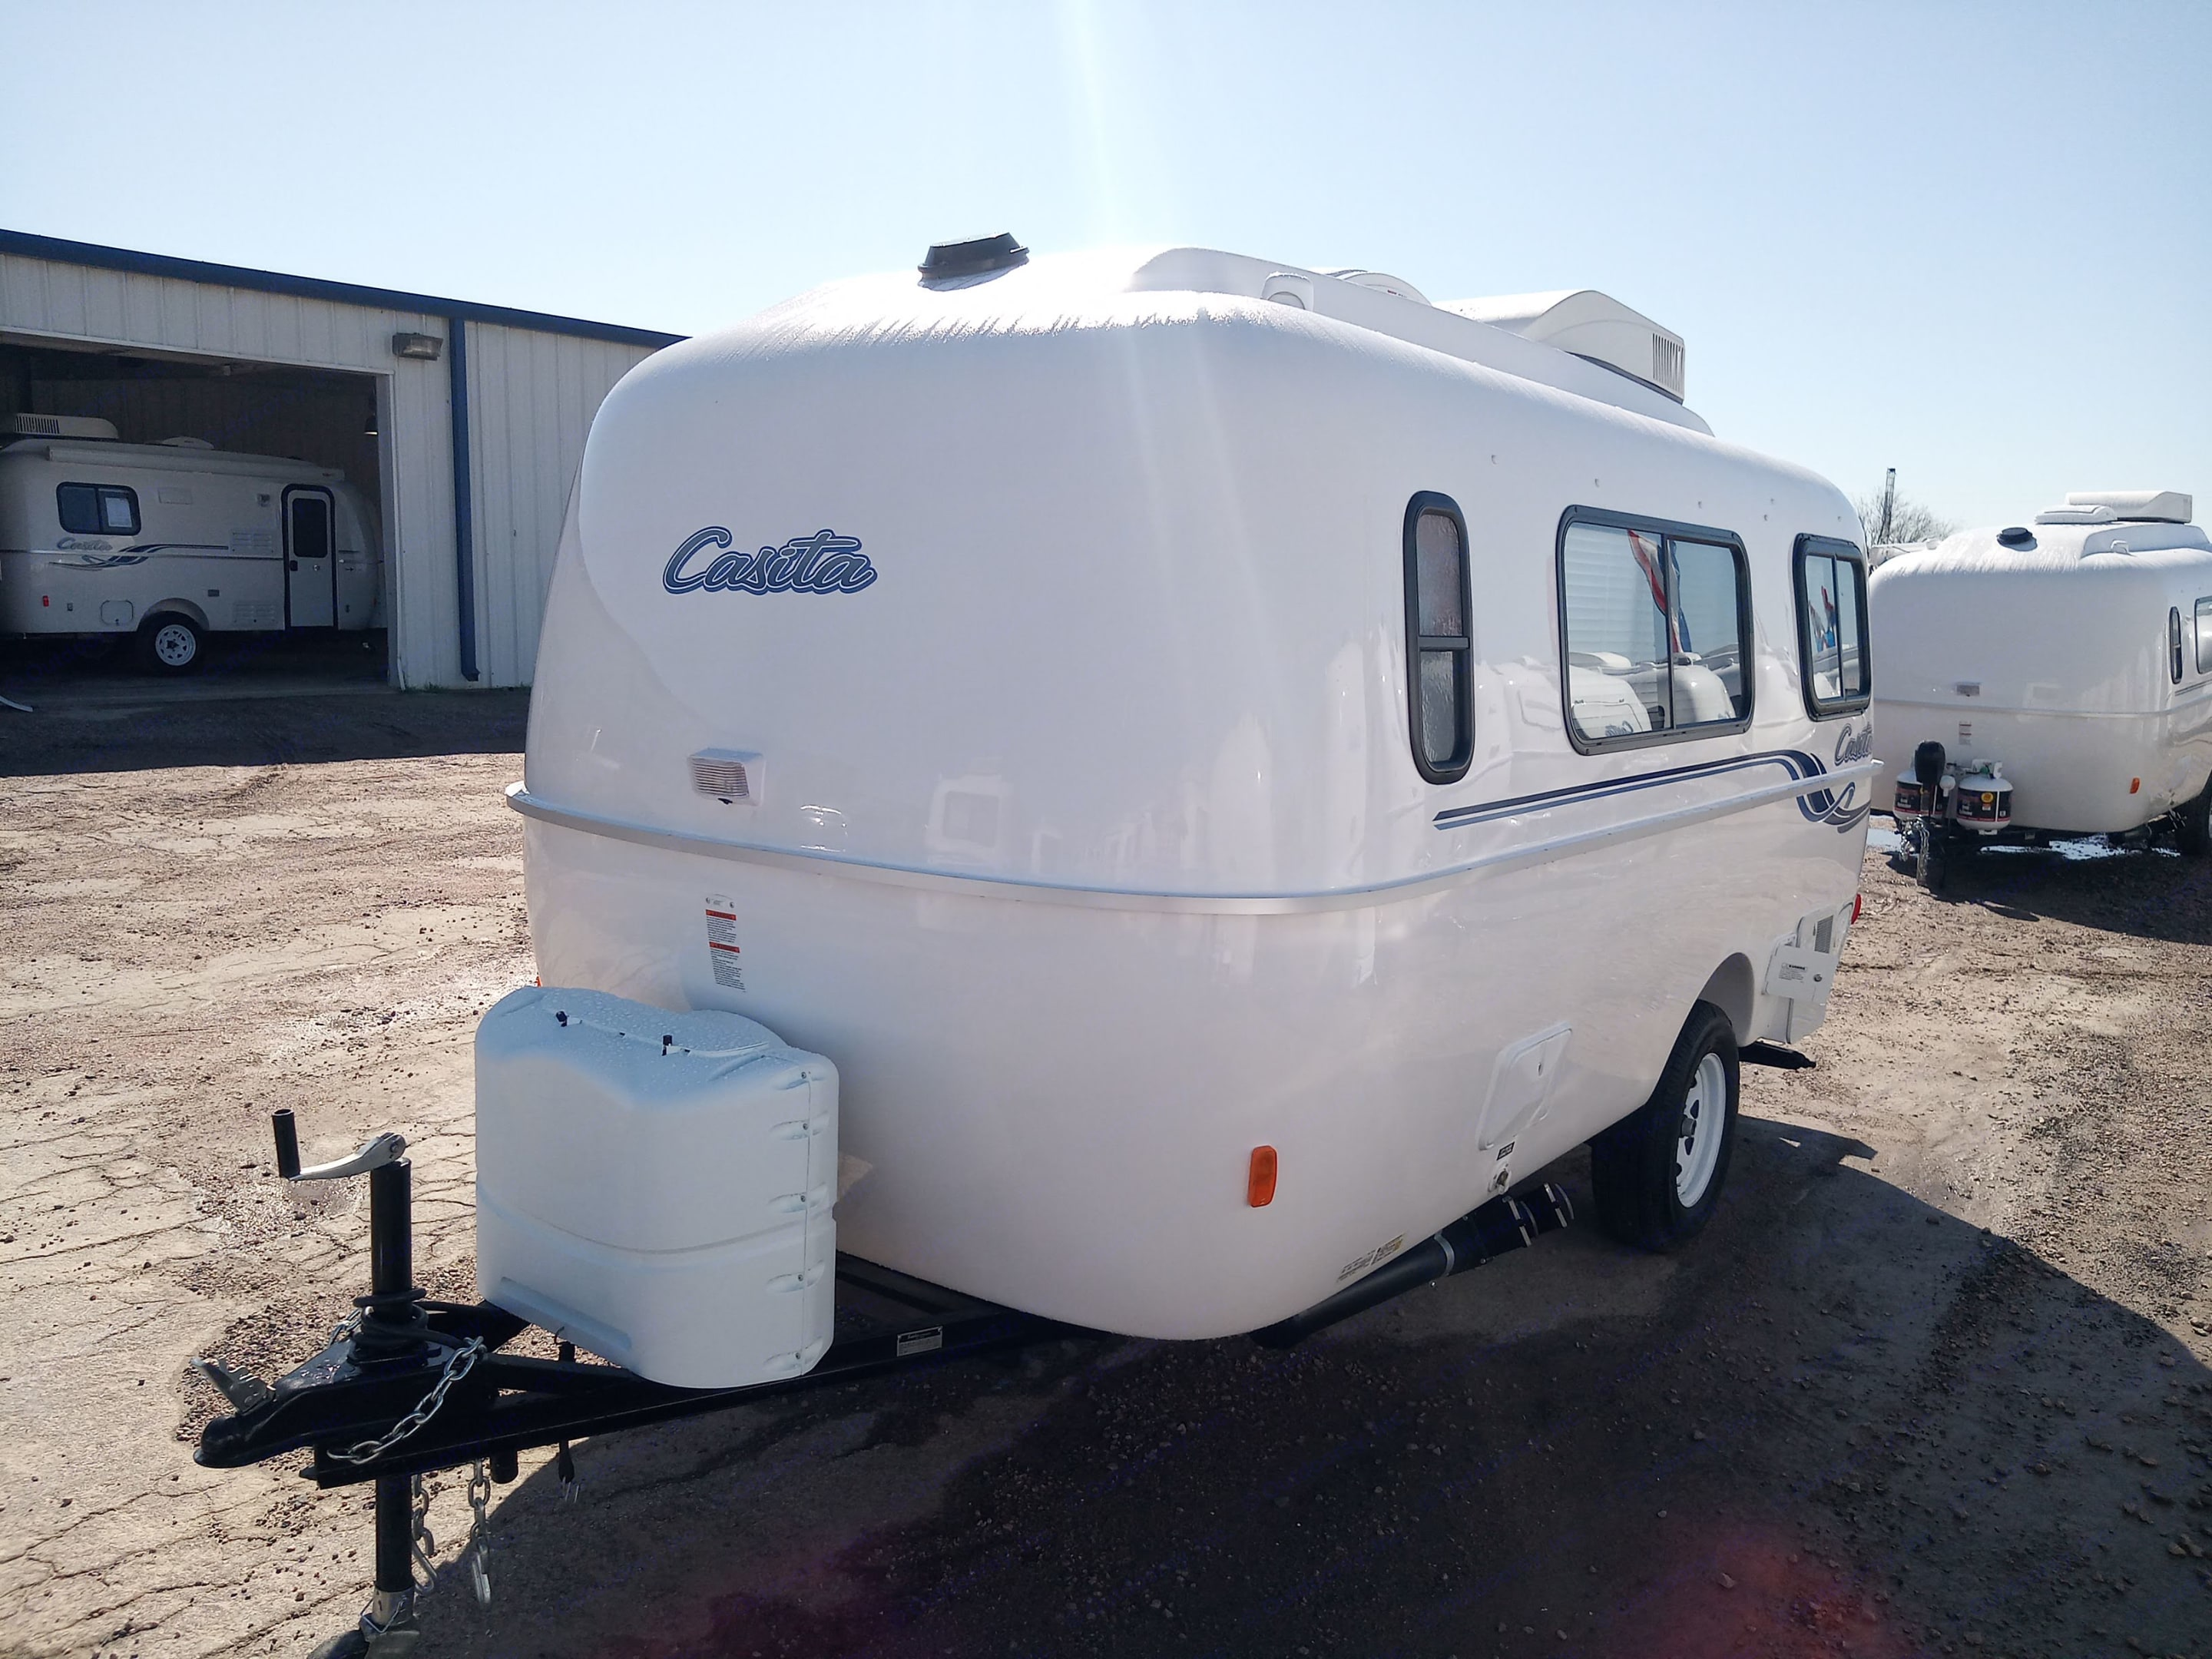 Fresh from the factory. Casita 17' Spirit Deluxe 2020